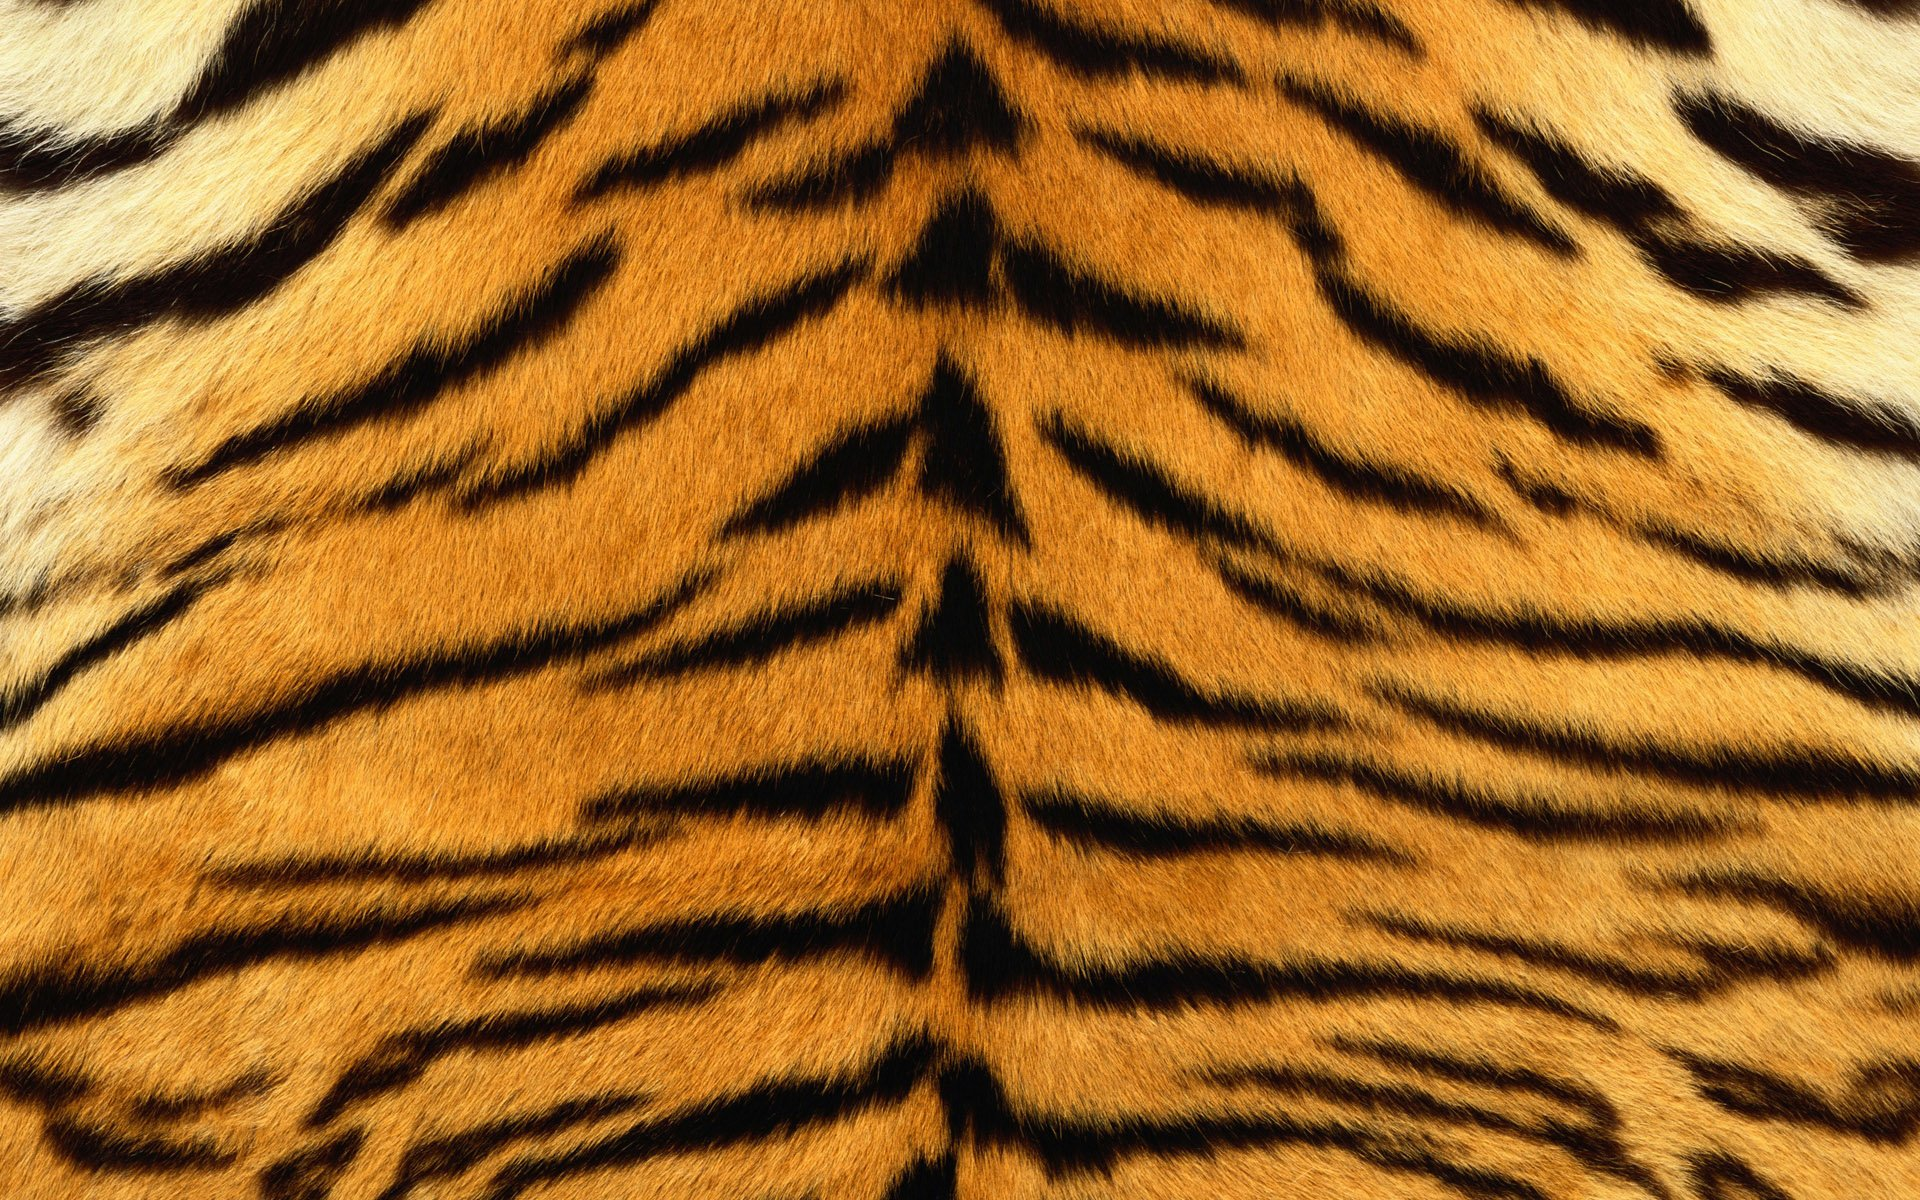 Tiger Print Full HD Wallpaper And Background Image